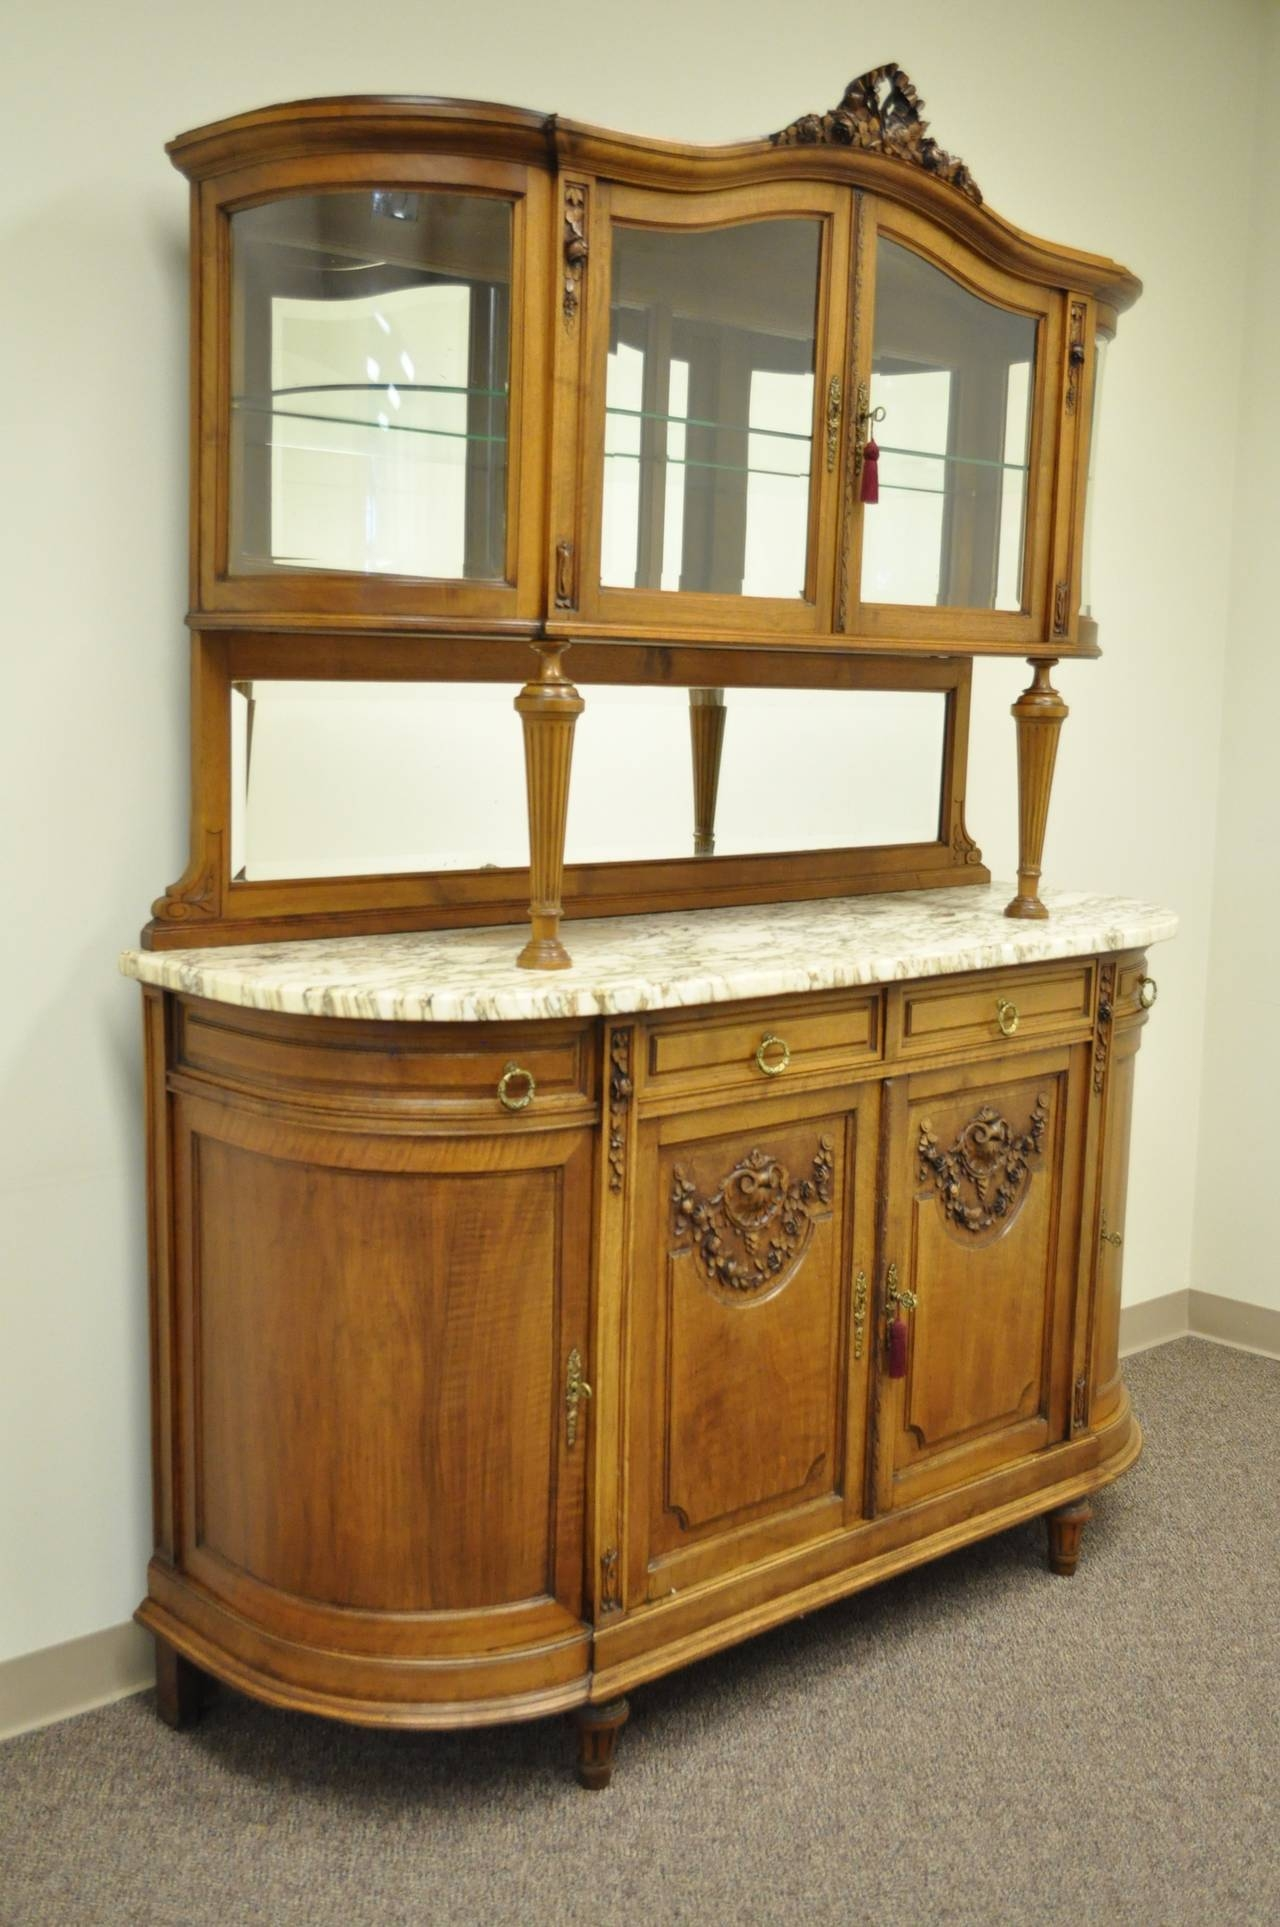 French Louis Xvi Style Marble Top Sideboard Or Curio Cabinet With Regard To Sideboards With Marble Tops (View 6 of 15)